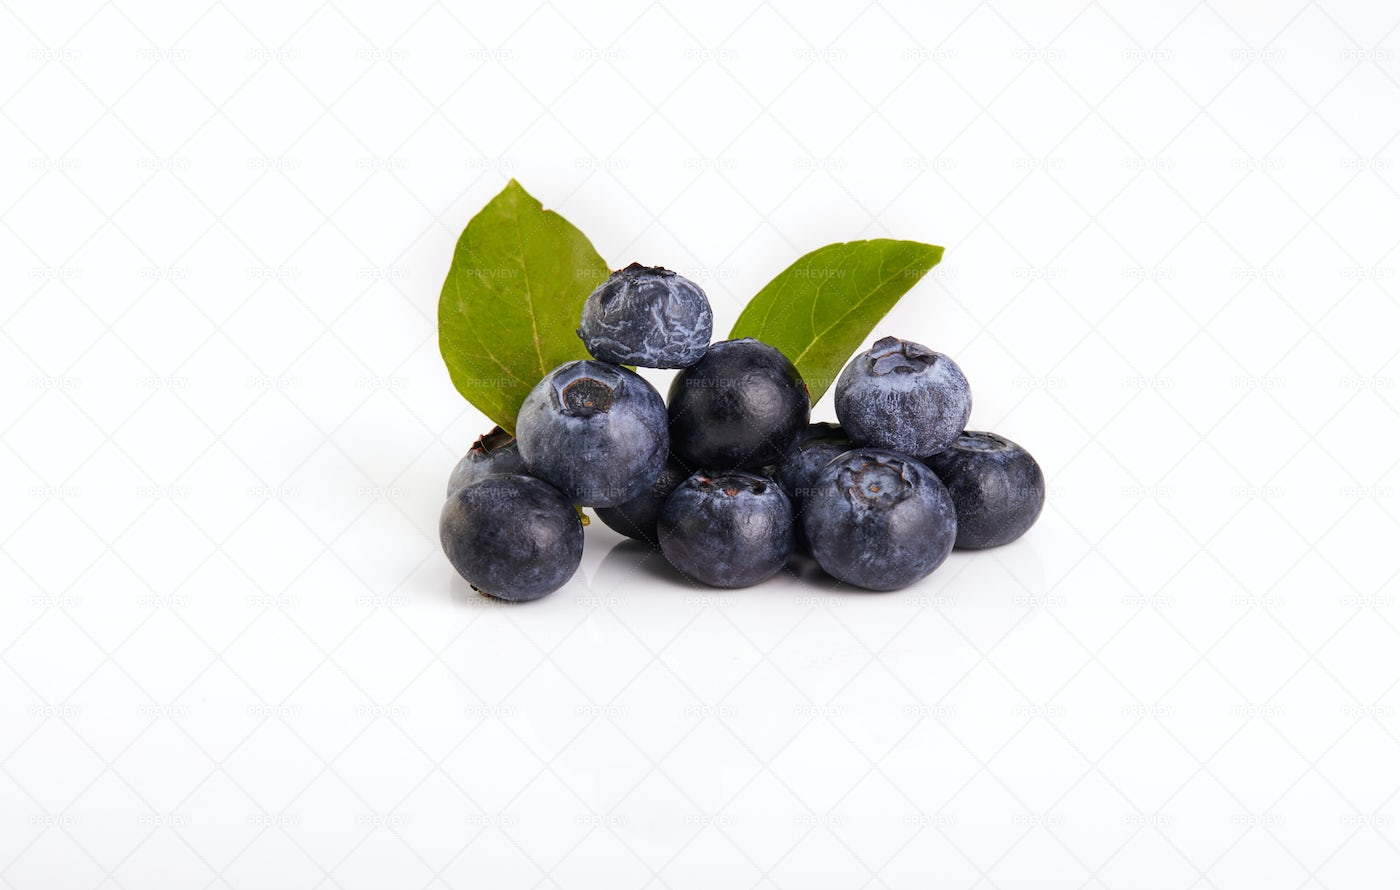 Blueberries And Green Leaves: Stock Photos